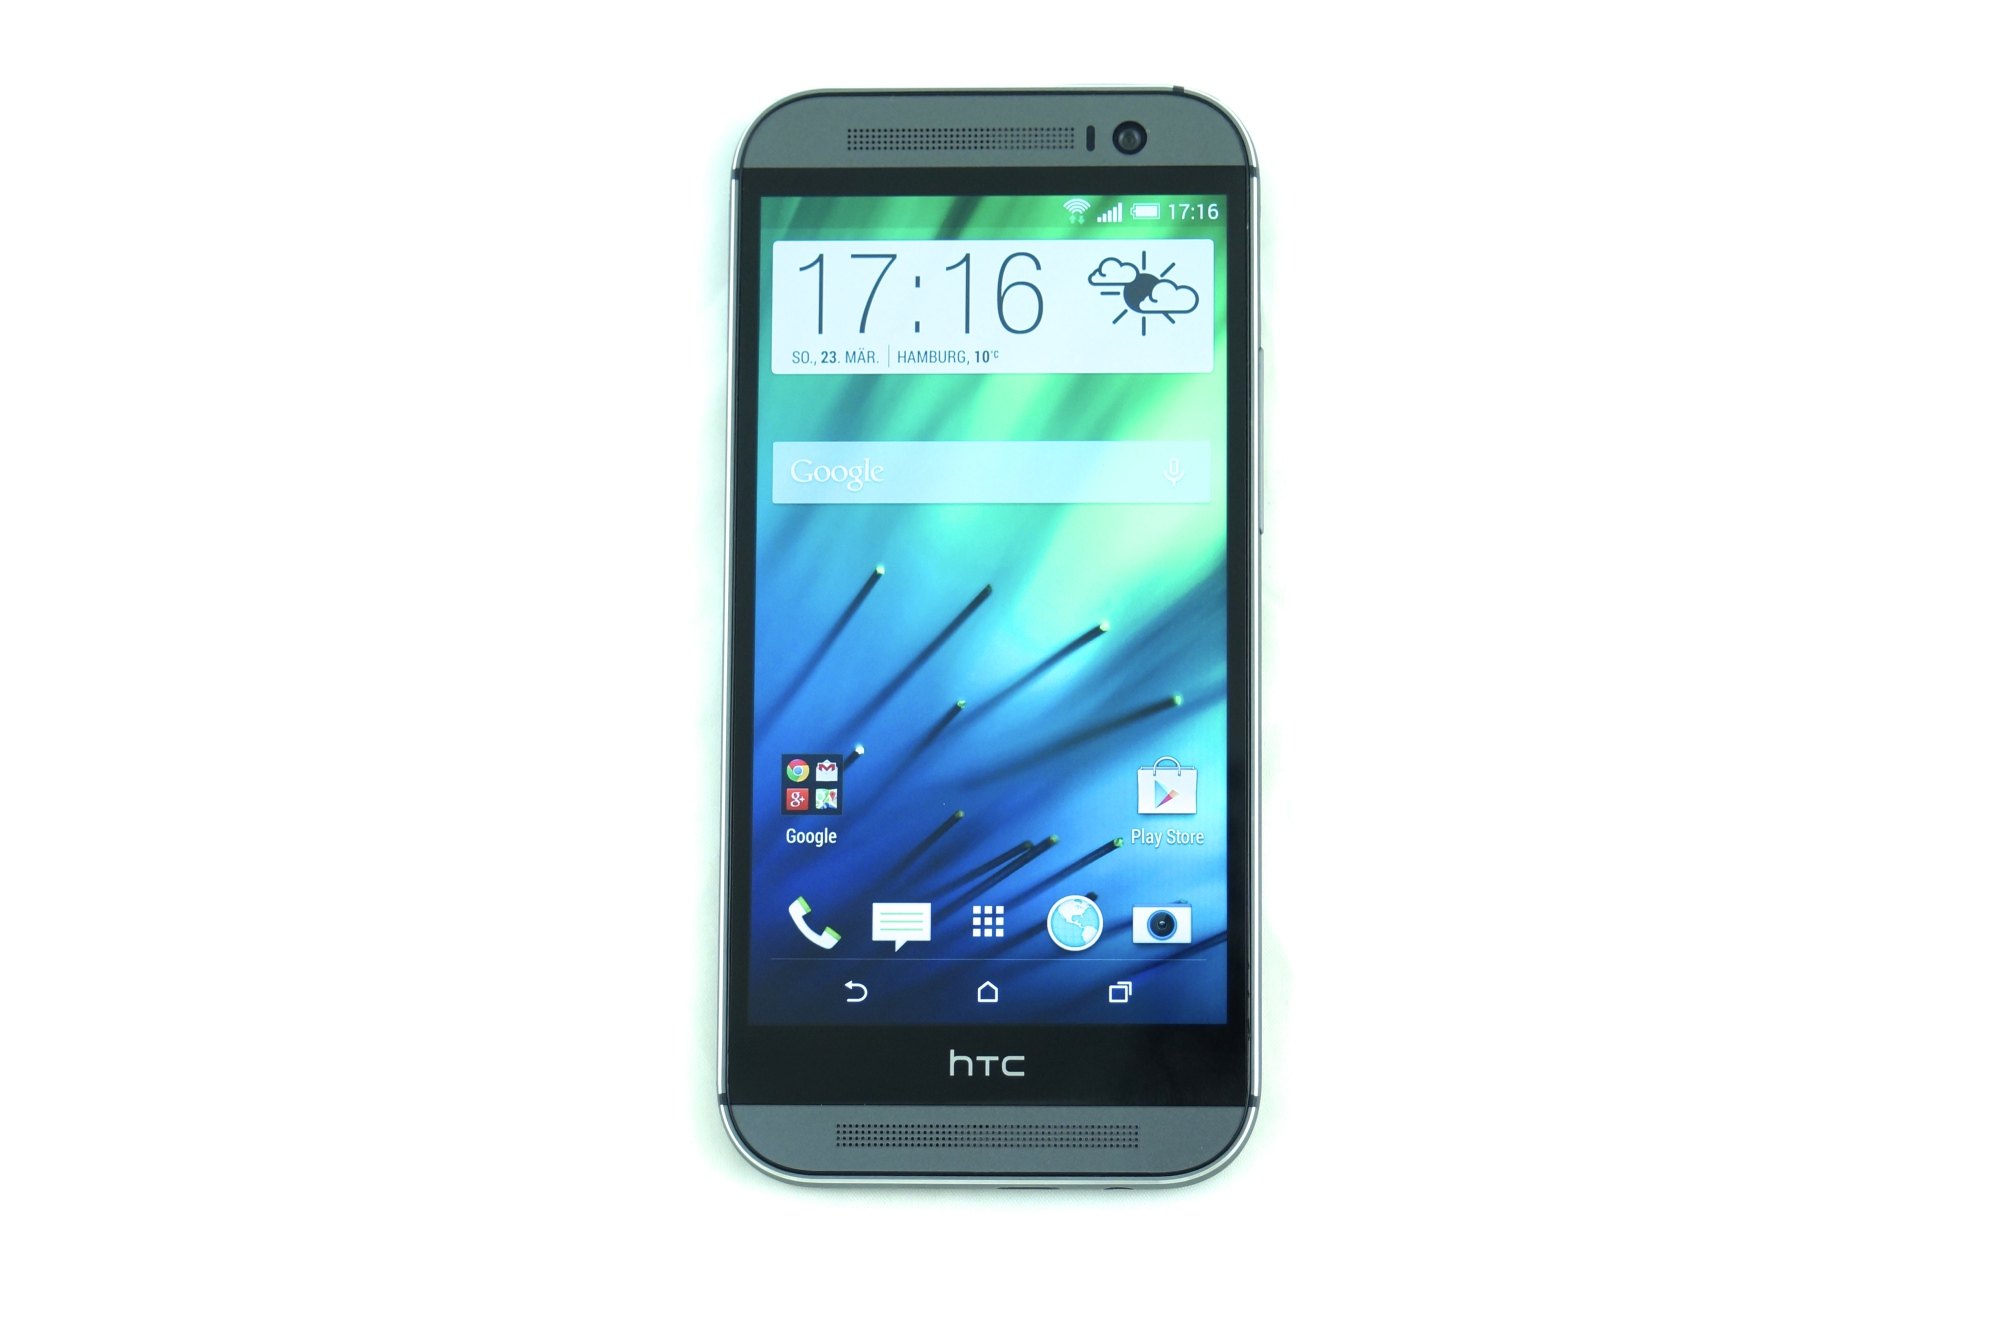 htc one m8 high end smartphone mit spezialkamera heise. Black Bedroom Furniture Sets. Home Design Ideas